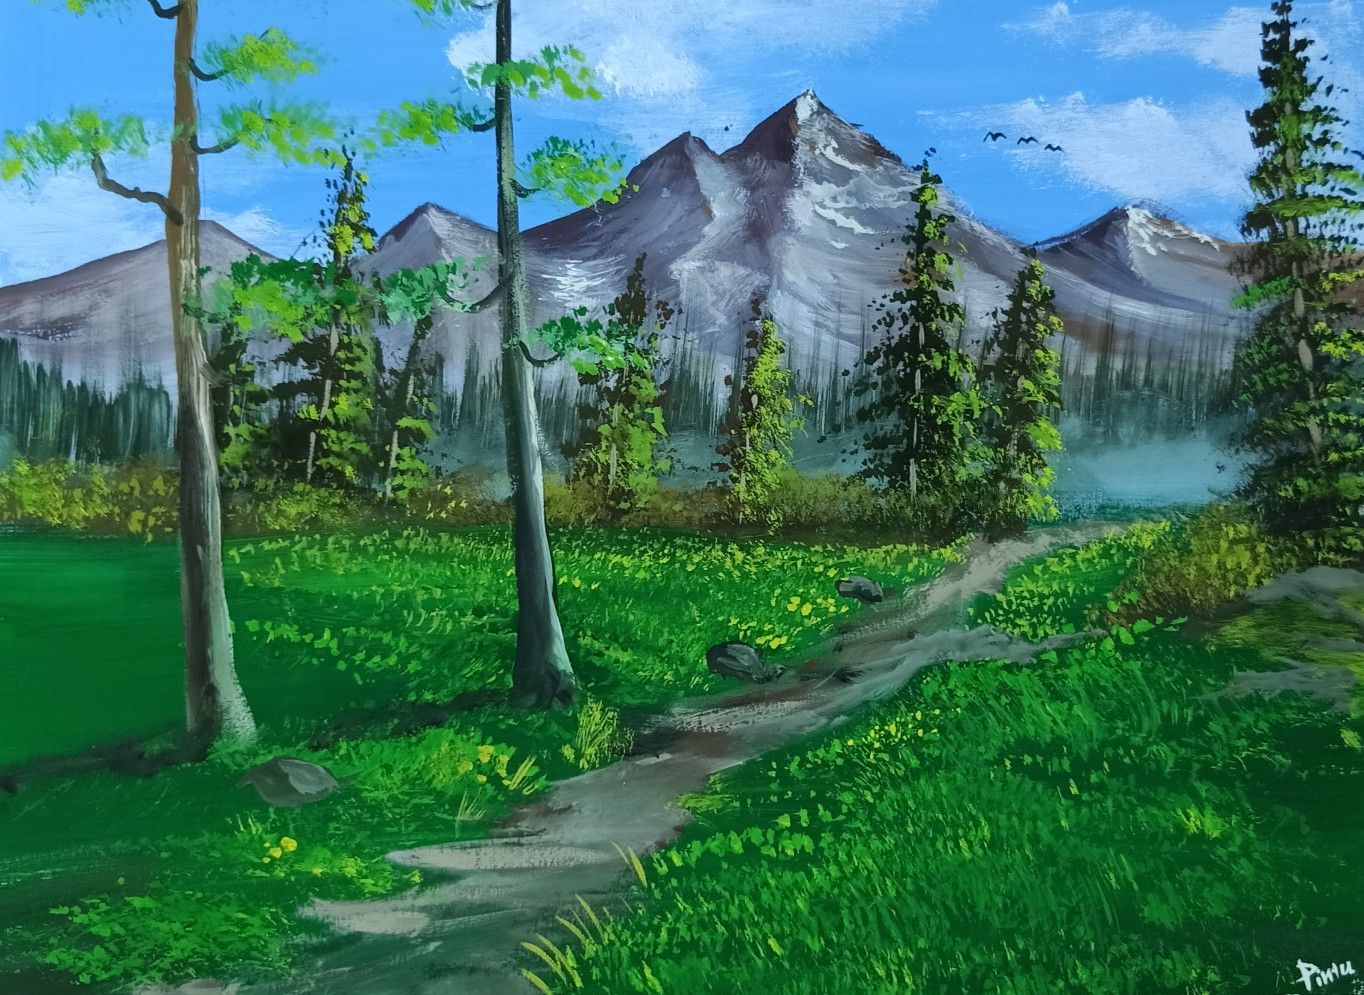 Poster Colour Painting In 2020 Poster Color Painting Landscape Paintings Art Gallery